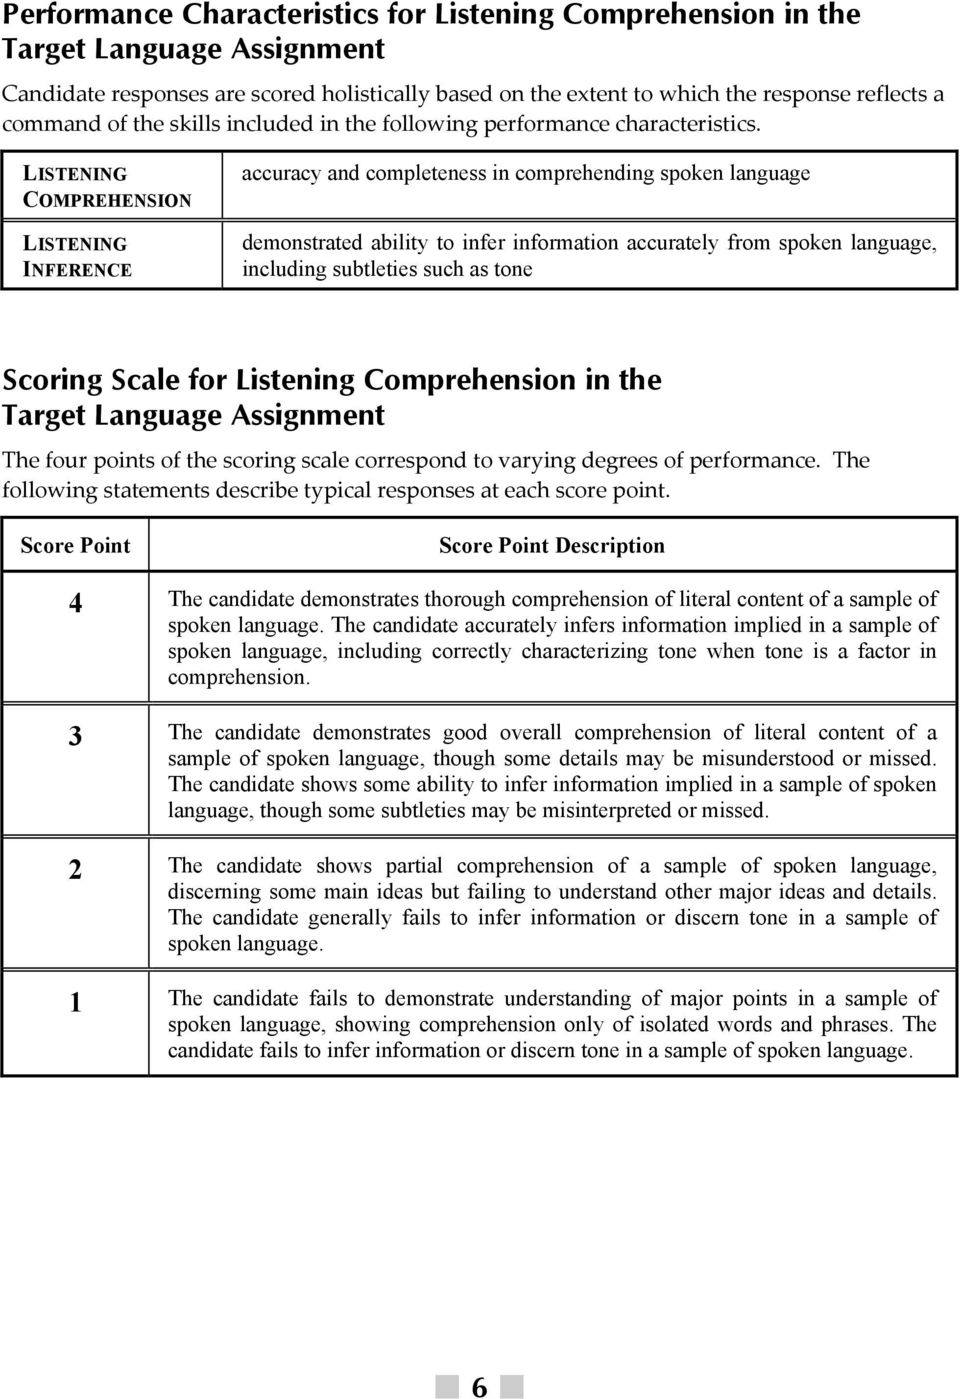 LISTENING COMPREHENSION LISTENING INFERENCE accuracy and completeness in comprehending spoken language demonstrated ability to infer information accurately from spoken language, including subtleties